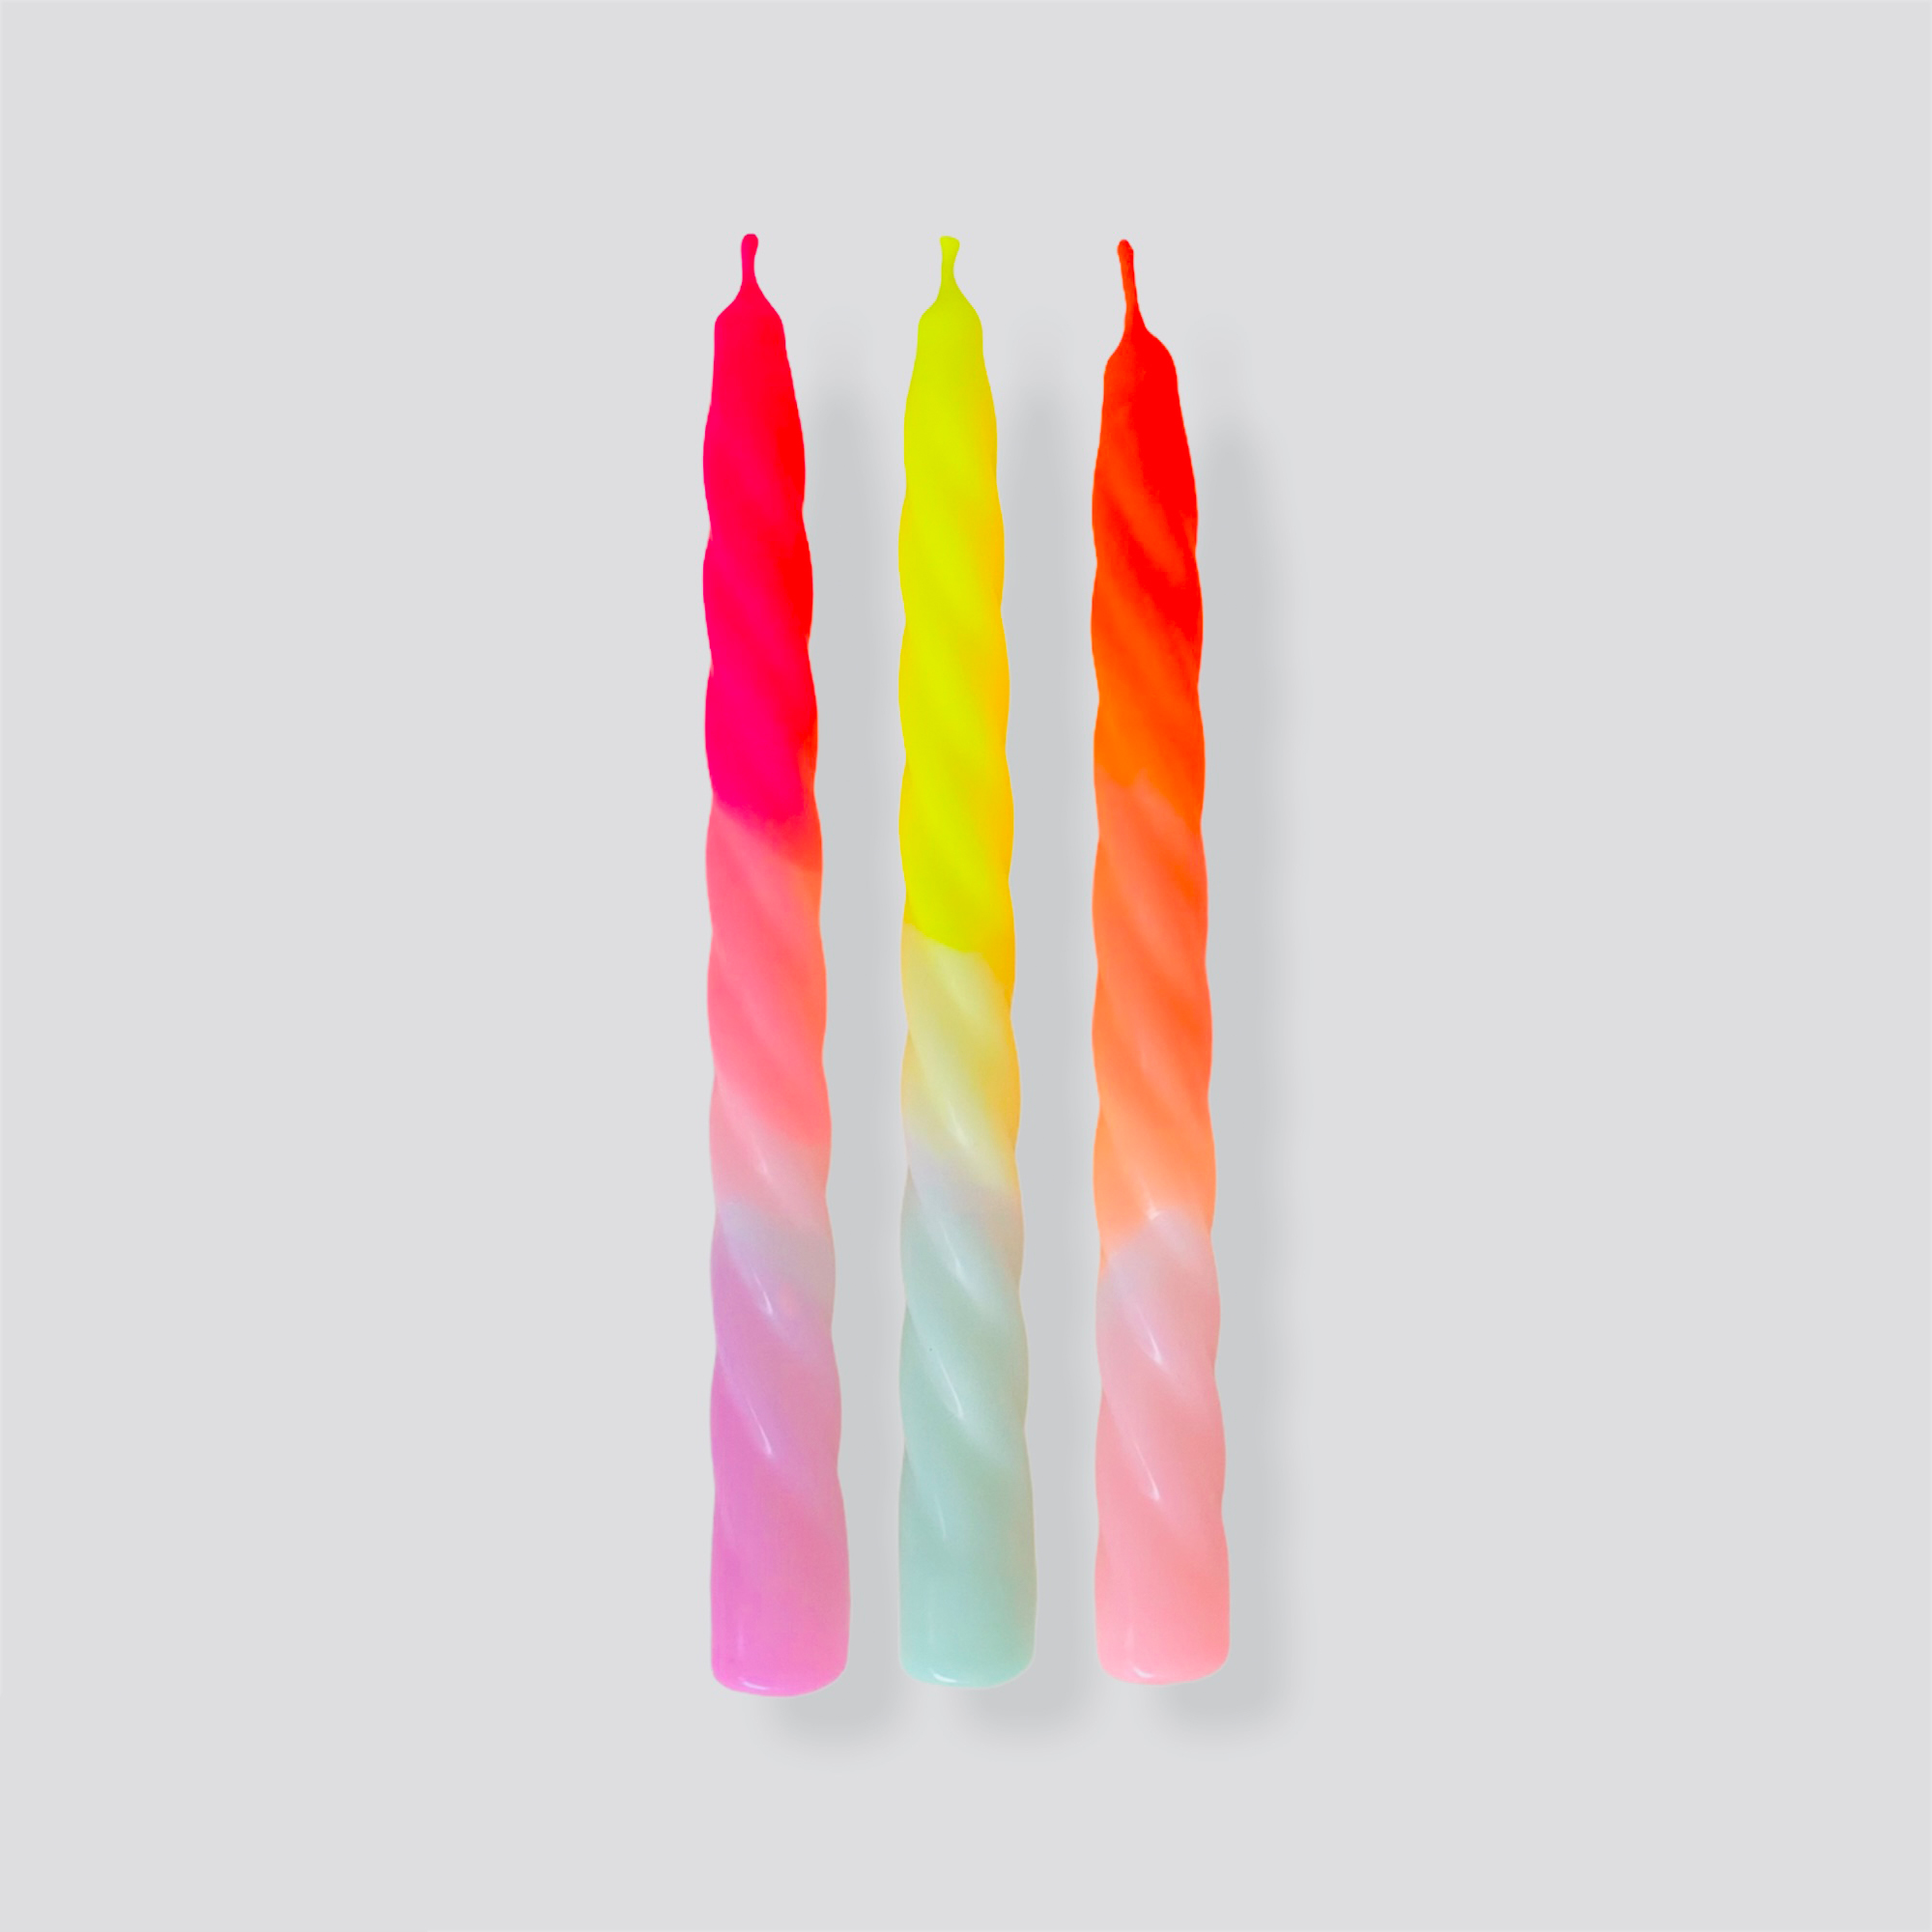 Dip Dye Twisted Candles in Shades of Fruit Salad